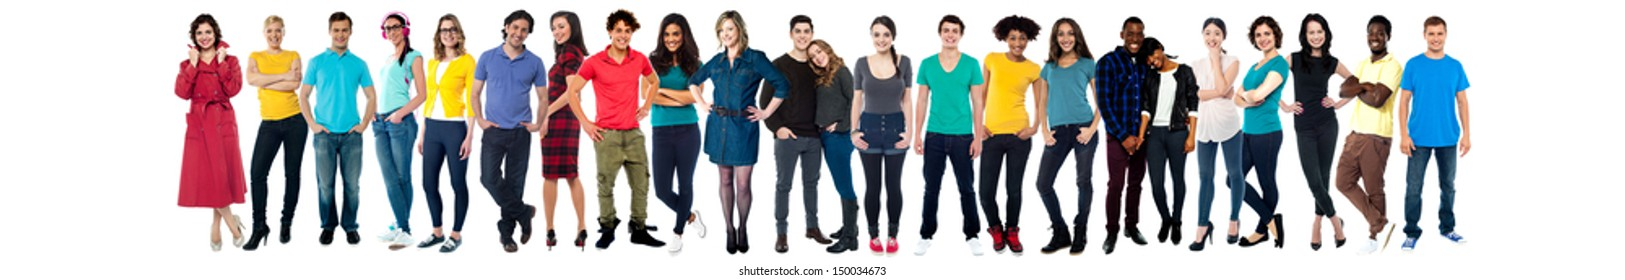 Collection of full length portrait of people in a collage